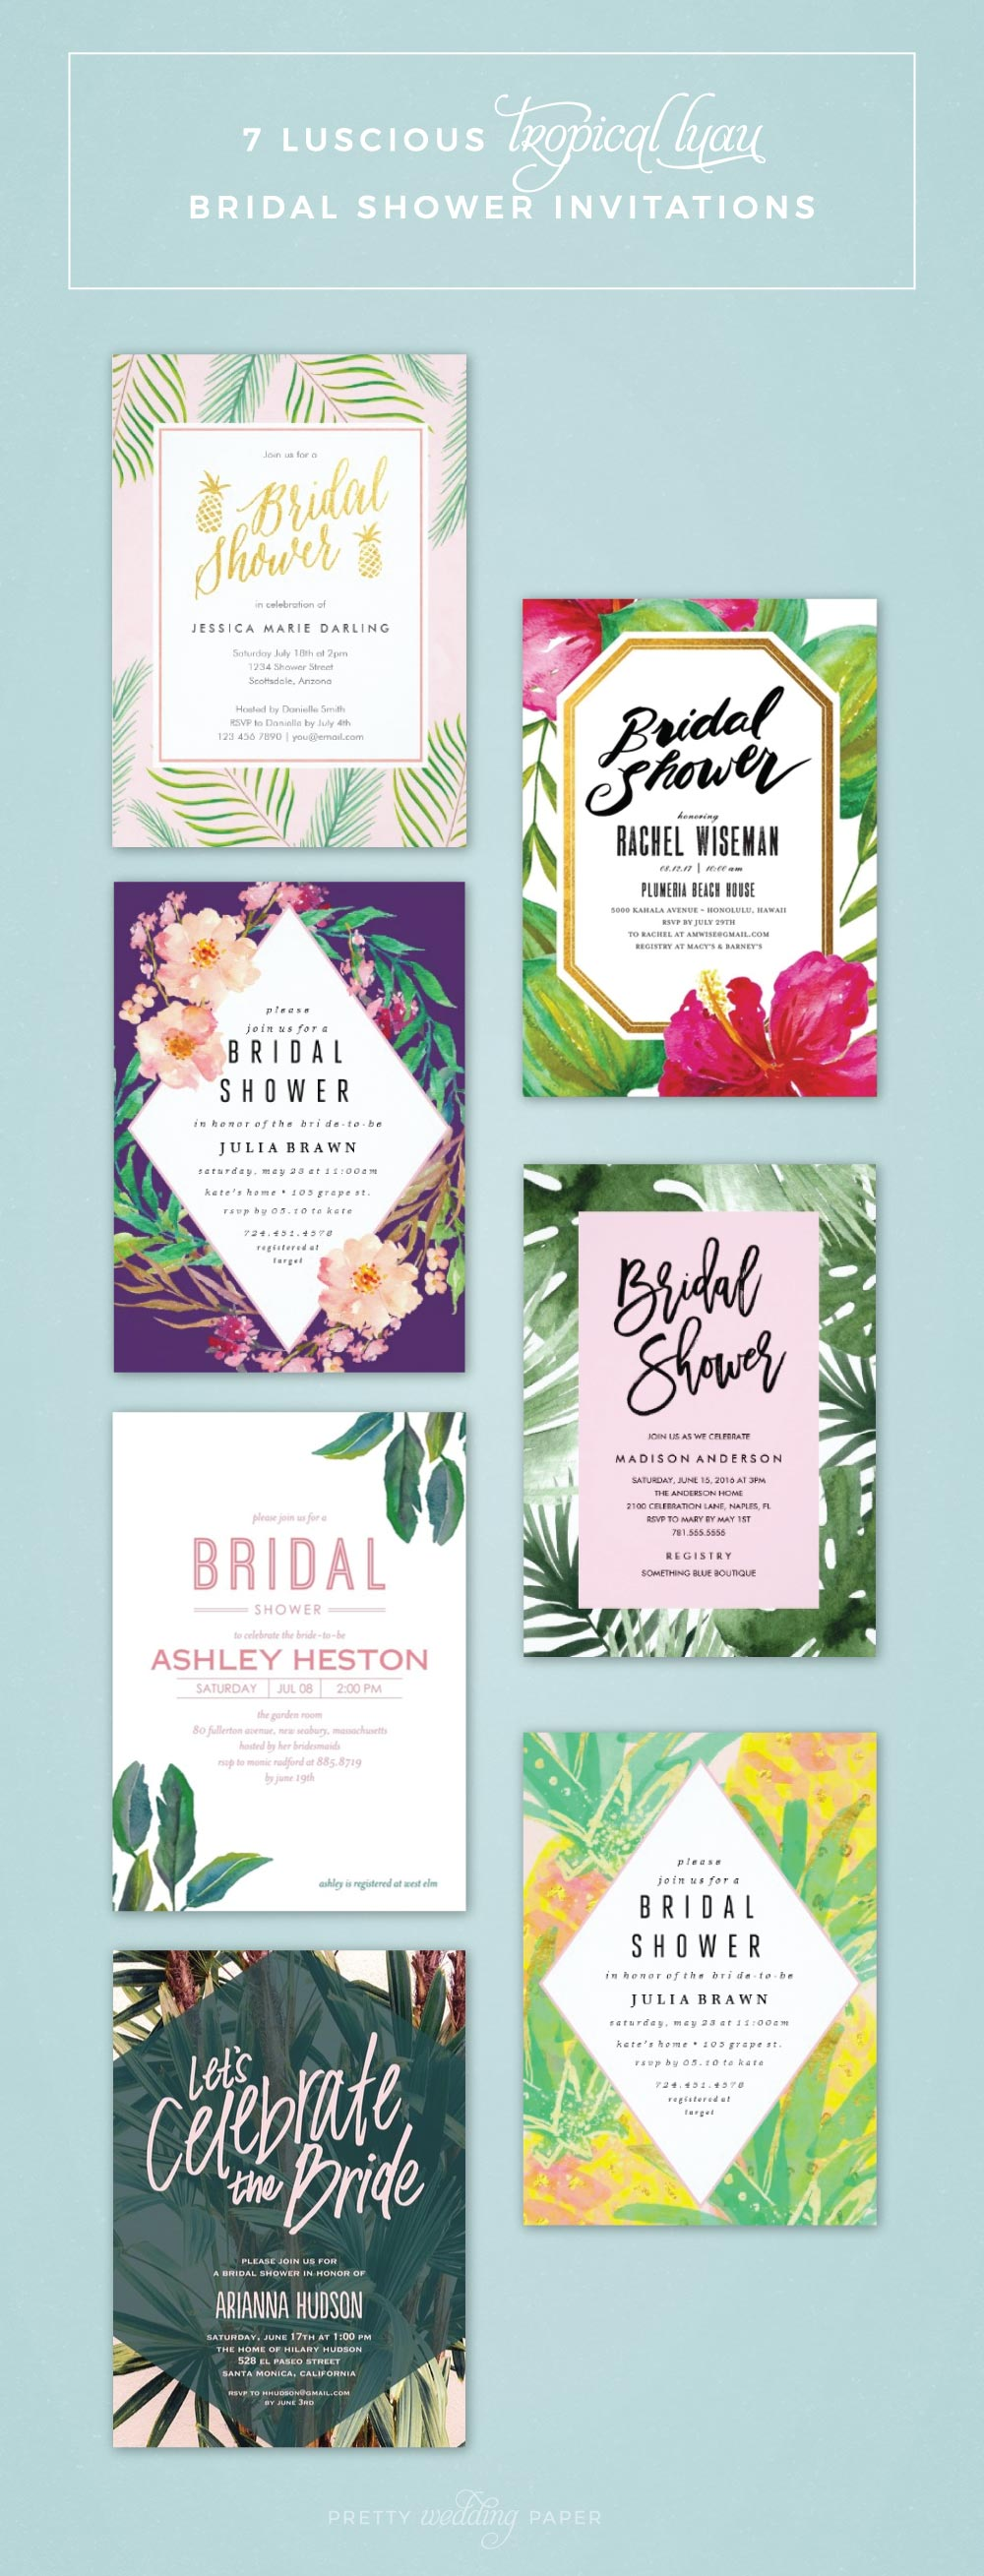 Pretty Wedding Paper Wedding Invitation Ideas Inspiration